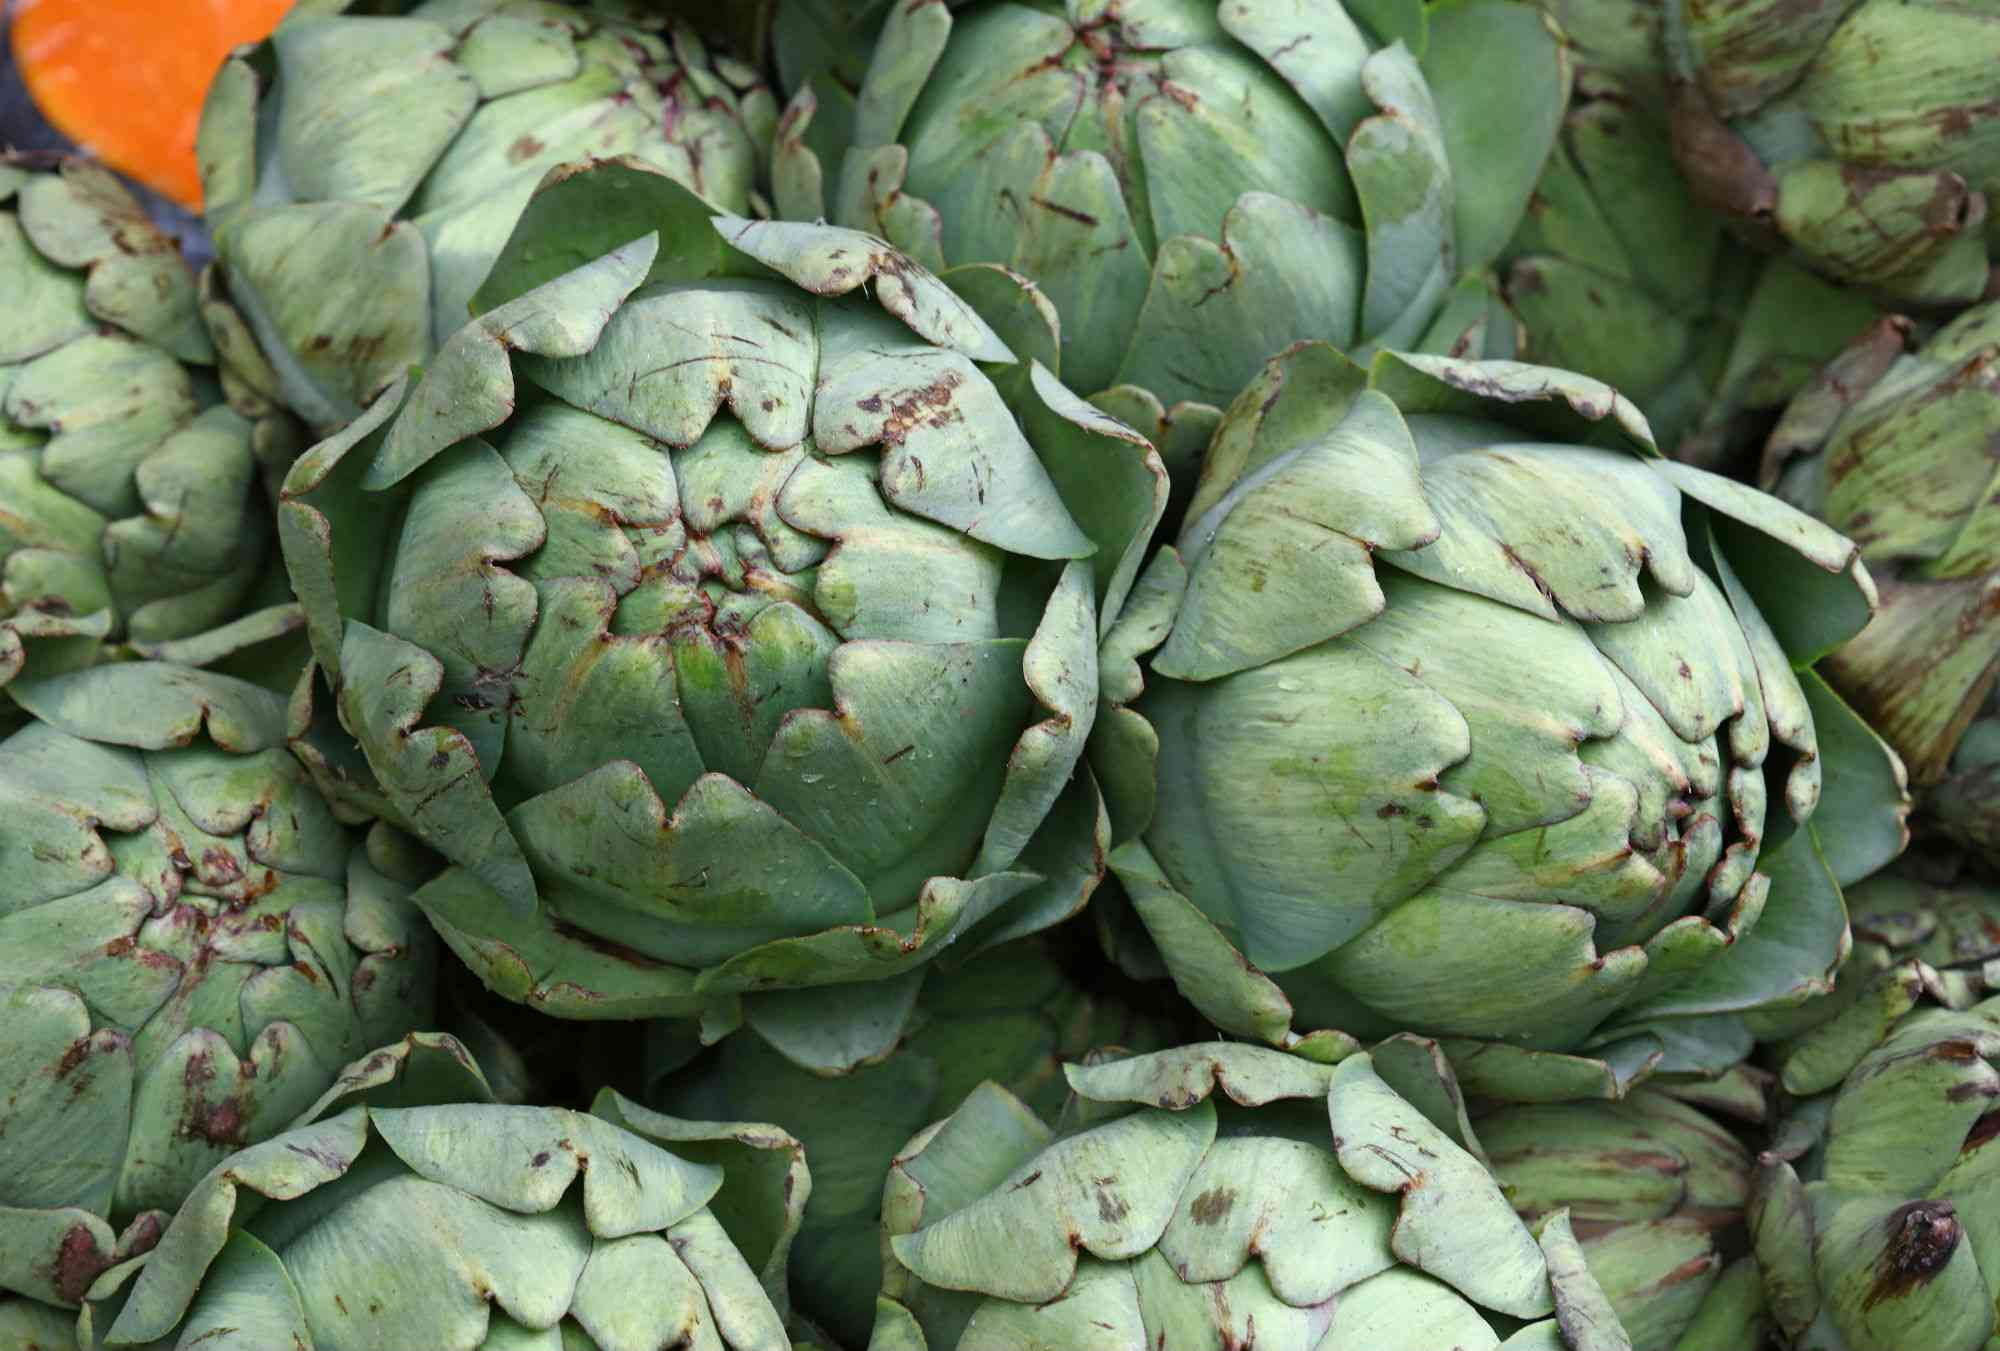 Close-up of fresh organic artichokes at market stall